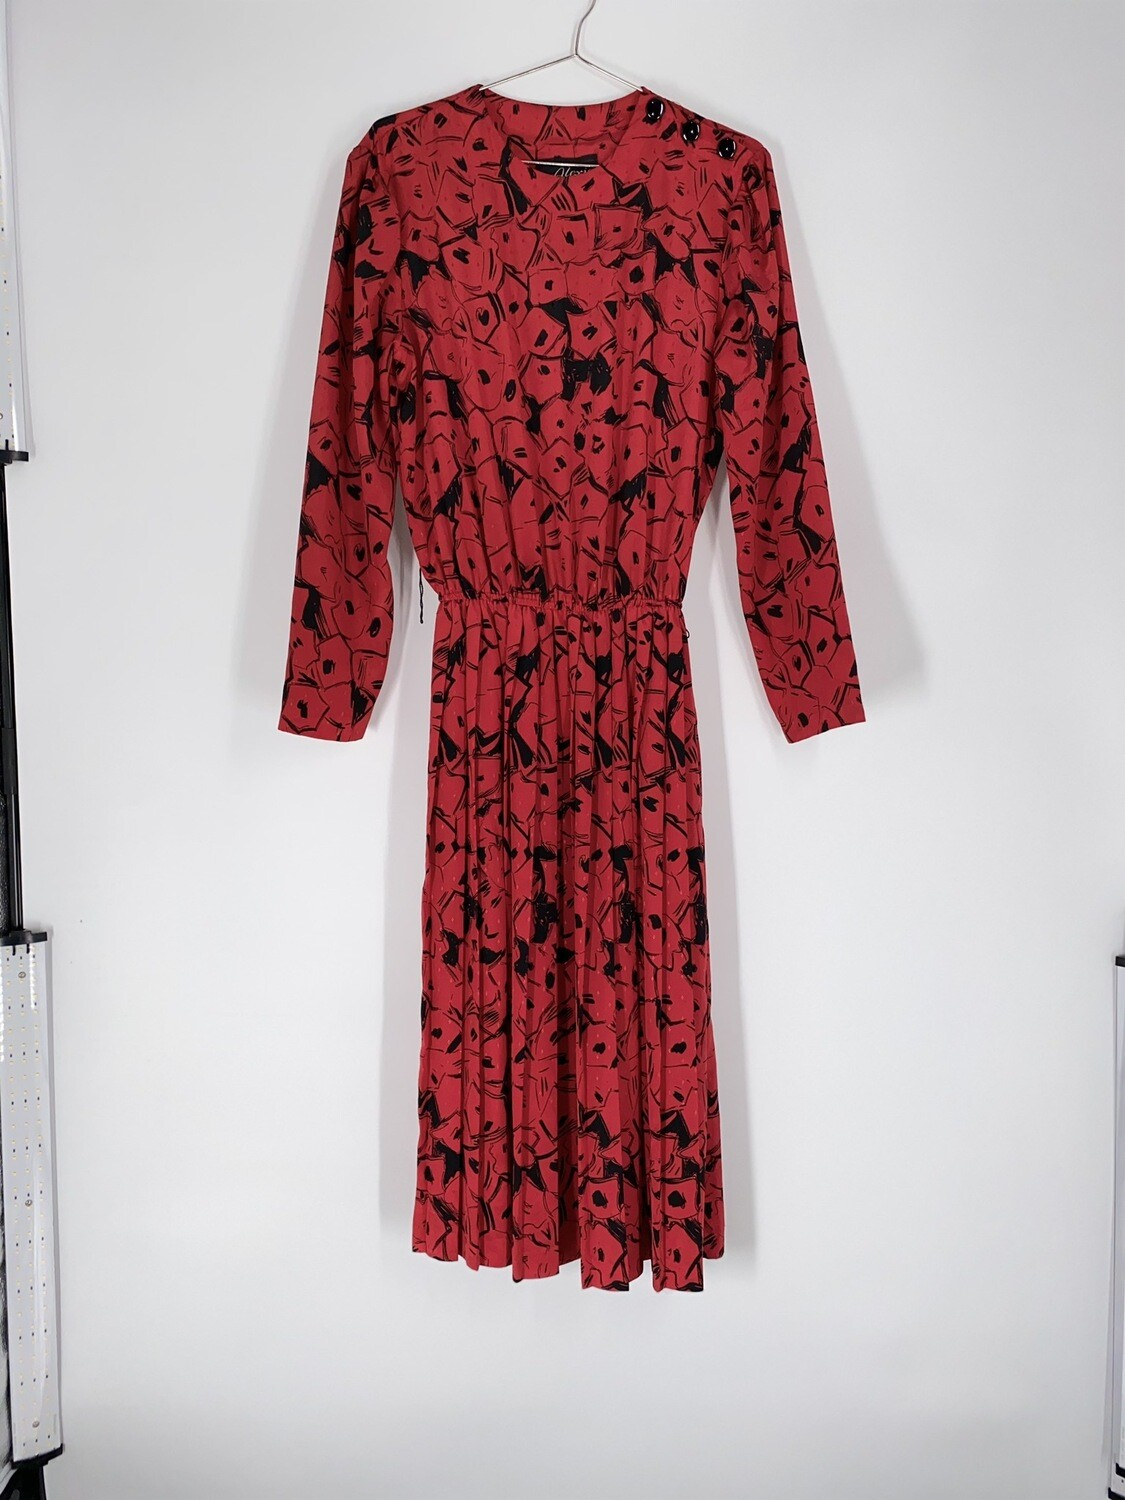 Patterned Pleated Red Dress Size L